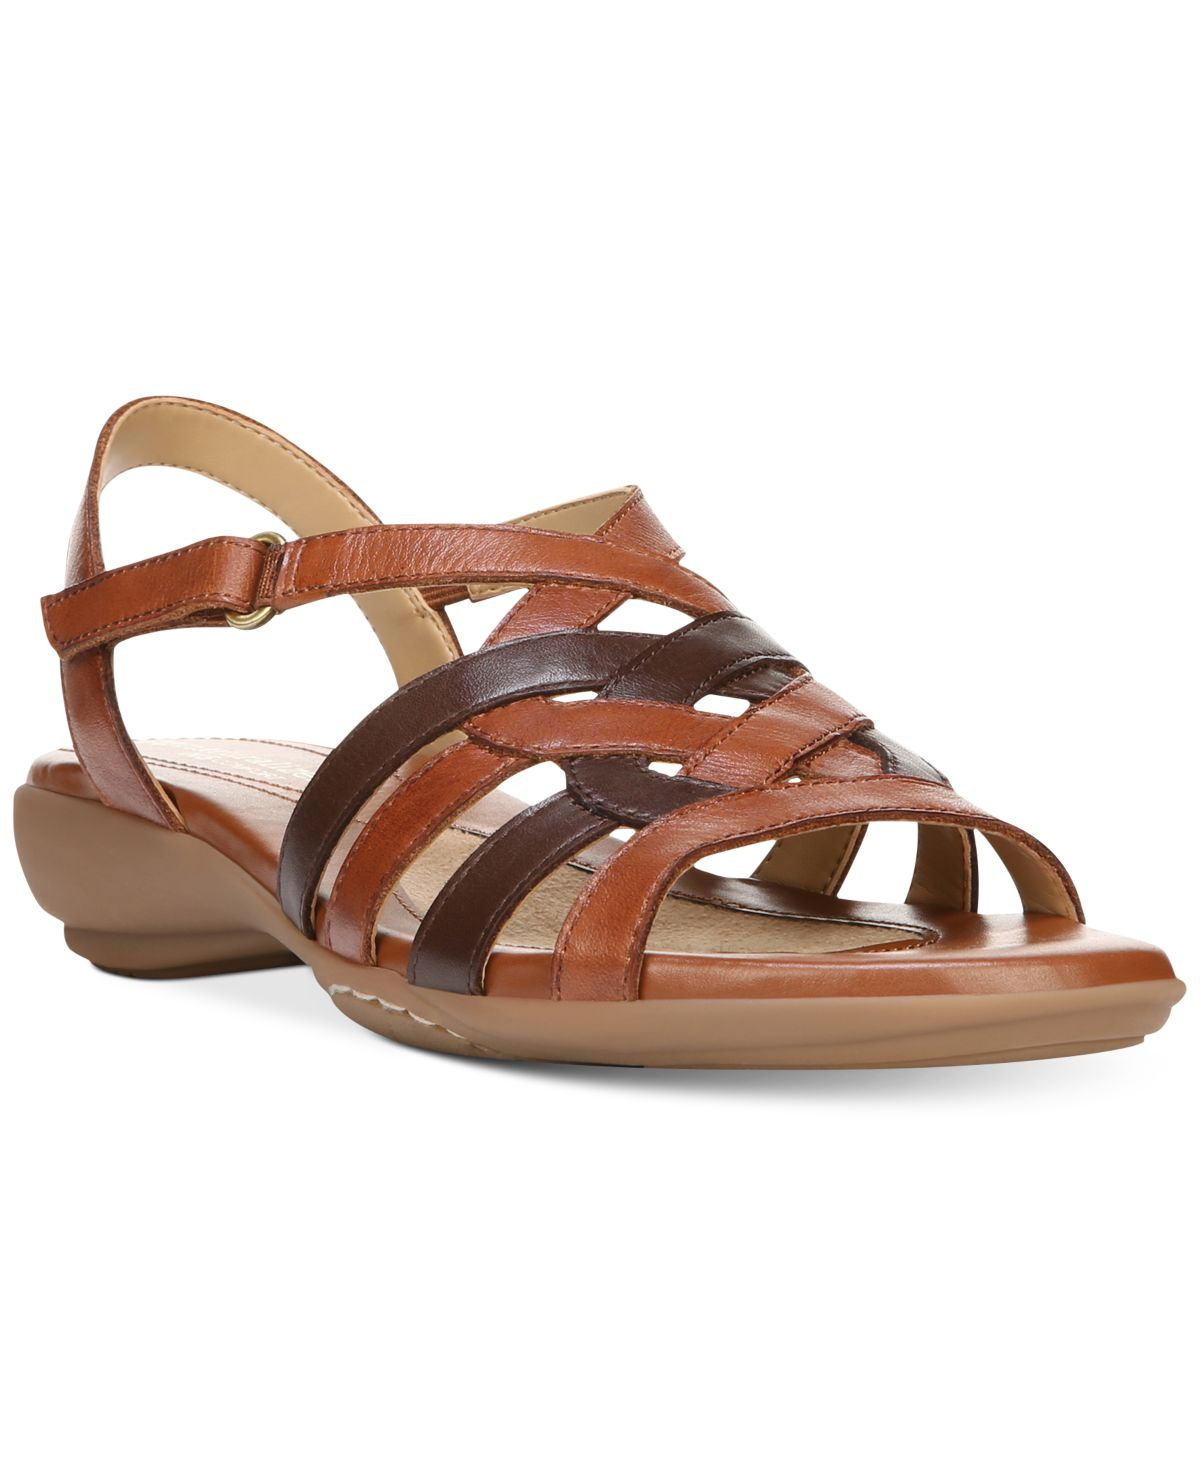 Naturalizer Charm Sandals by Naturalizer